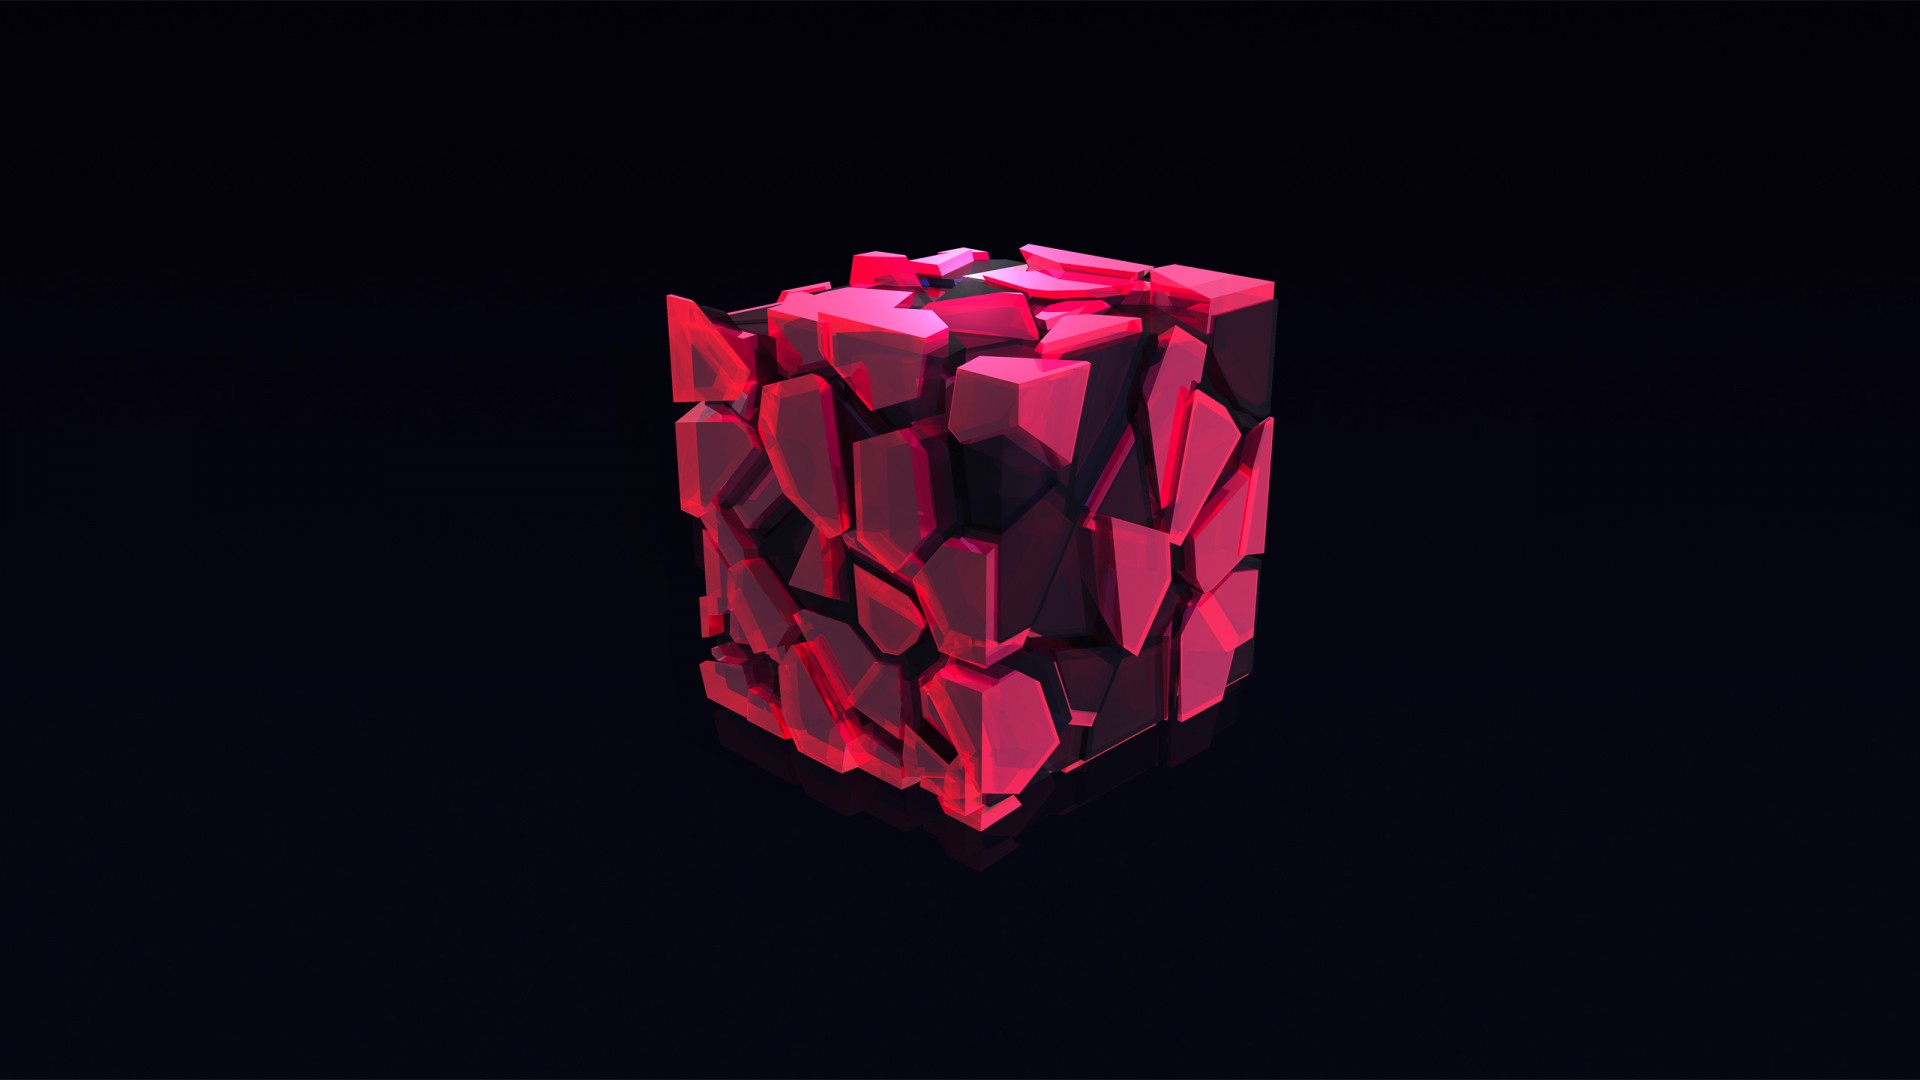 Amazing Quotes Wallpapers For Facebook Wallpaper Cube 3d Pink Hd Abstract 16361